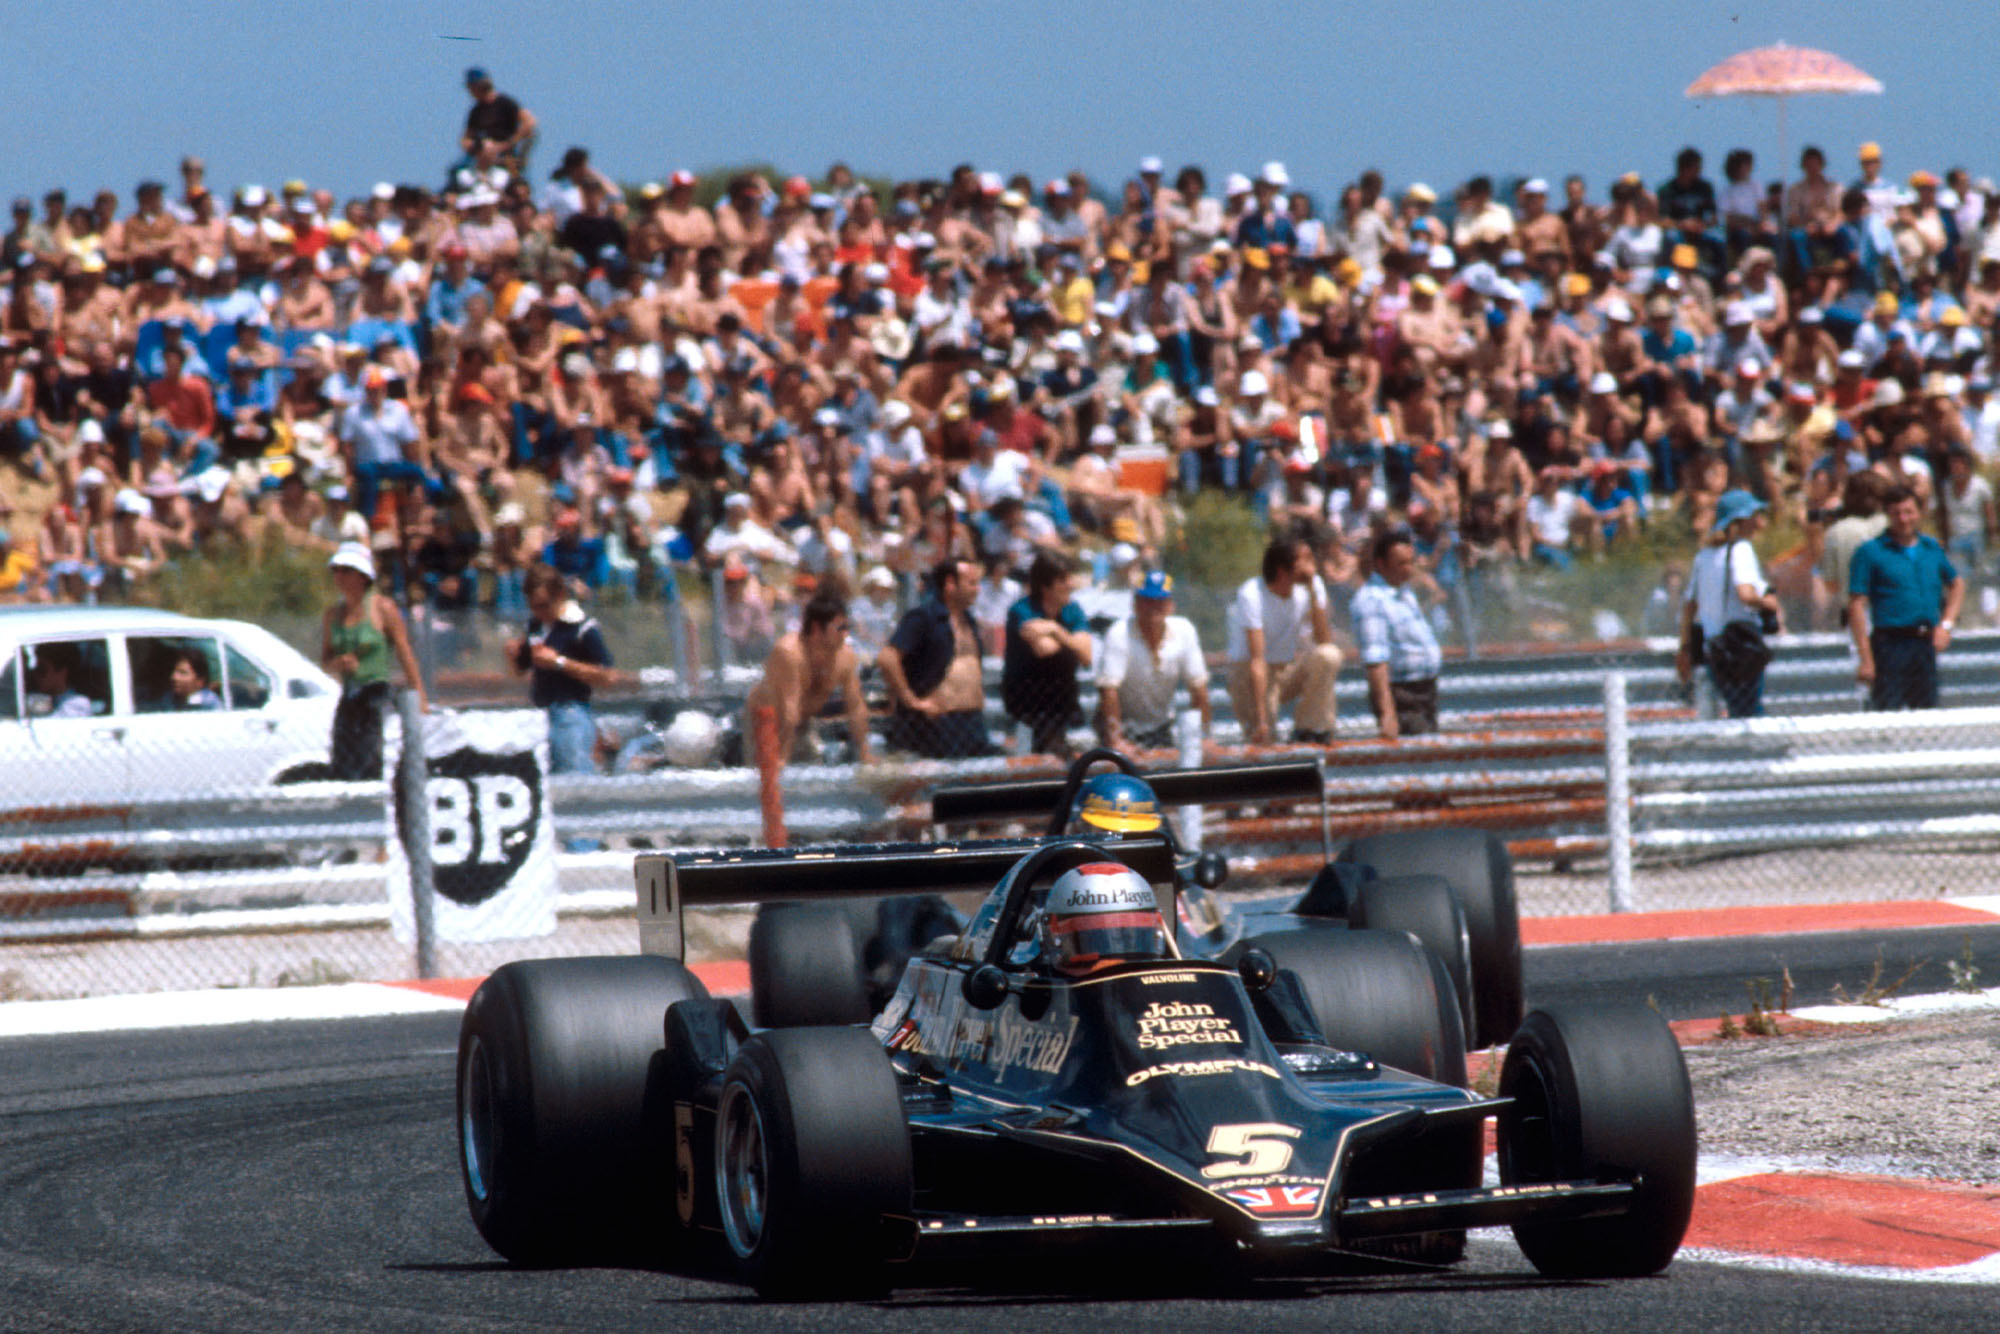 Mario Andretti (Lotus) leads team-amet Ronnie Peterson at the 1978 French Grand Prix, Paul Ricard.